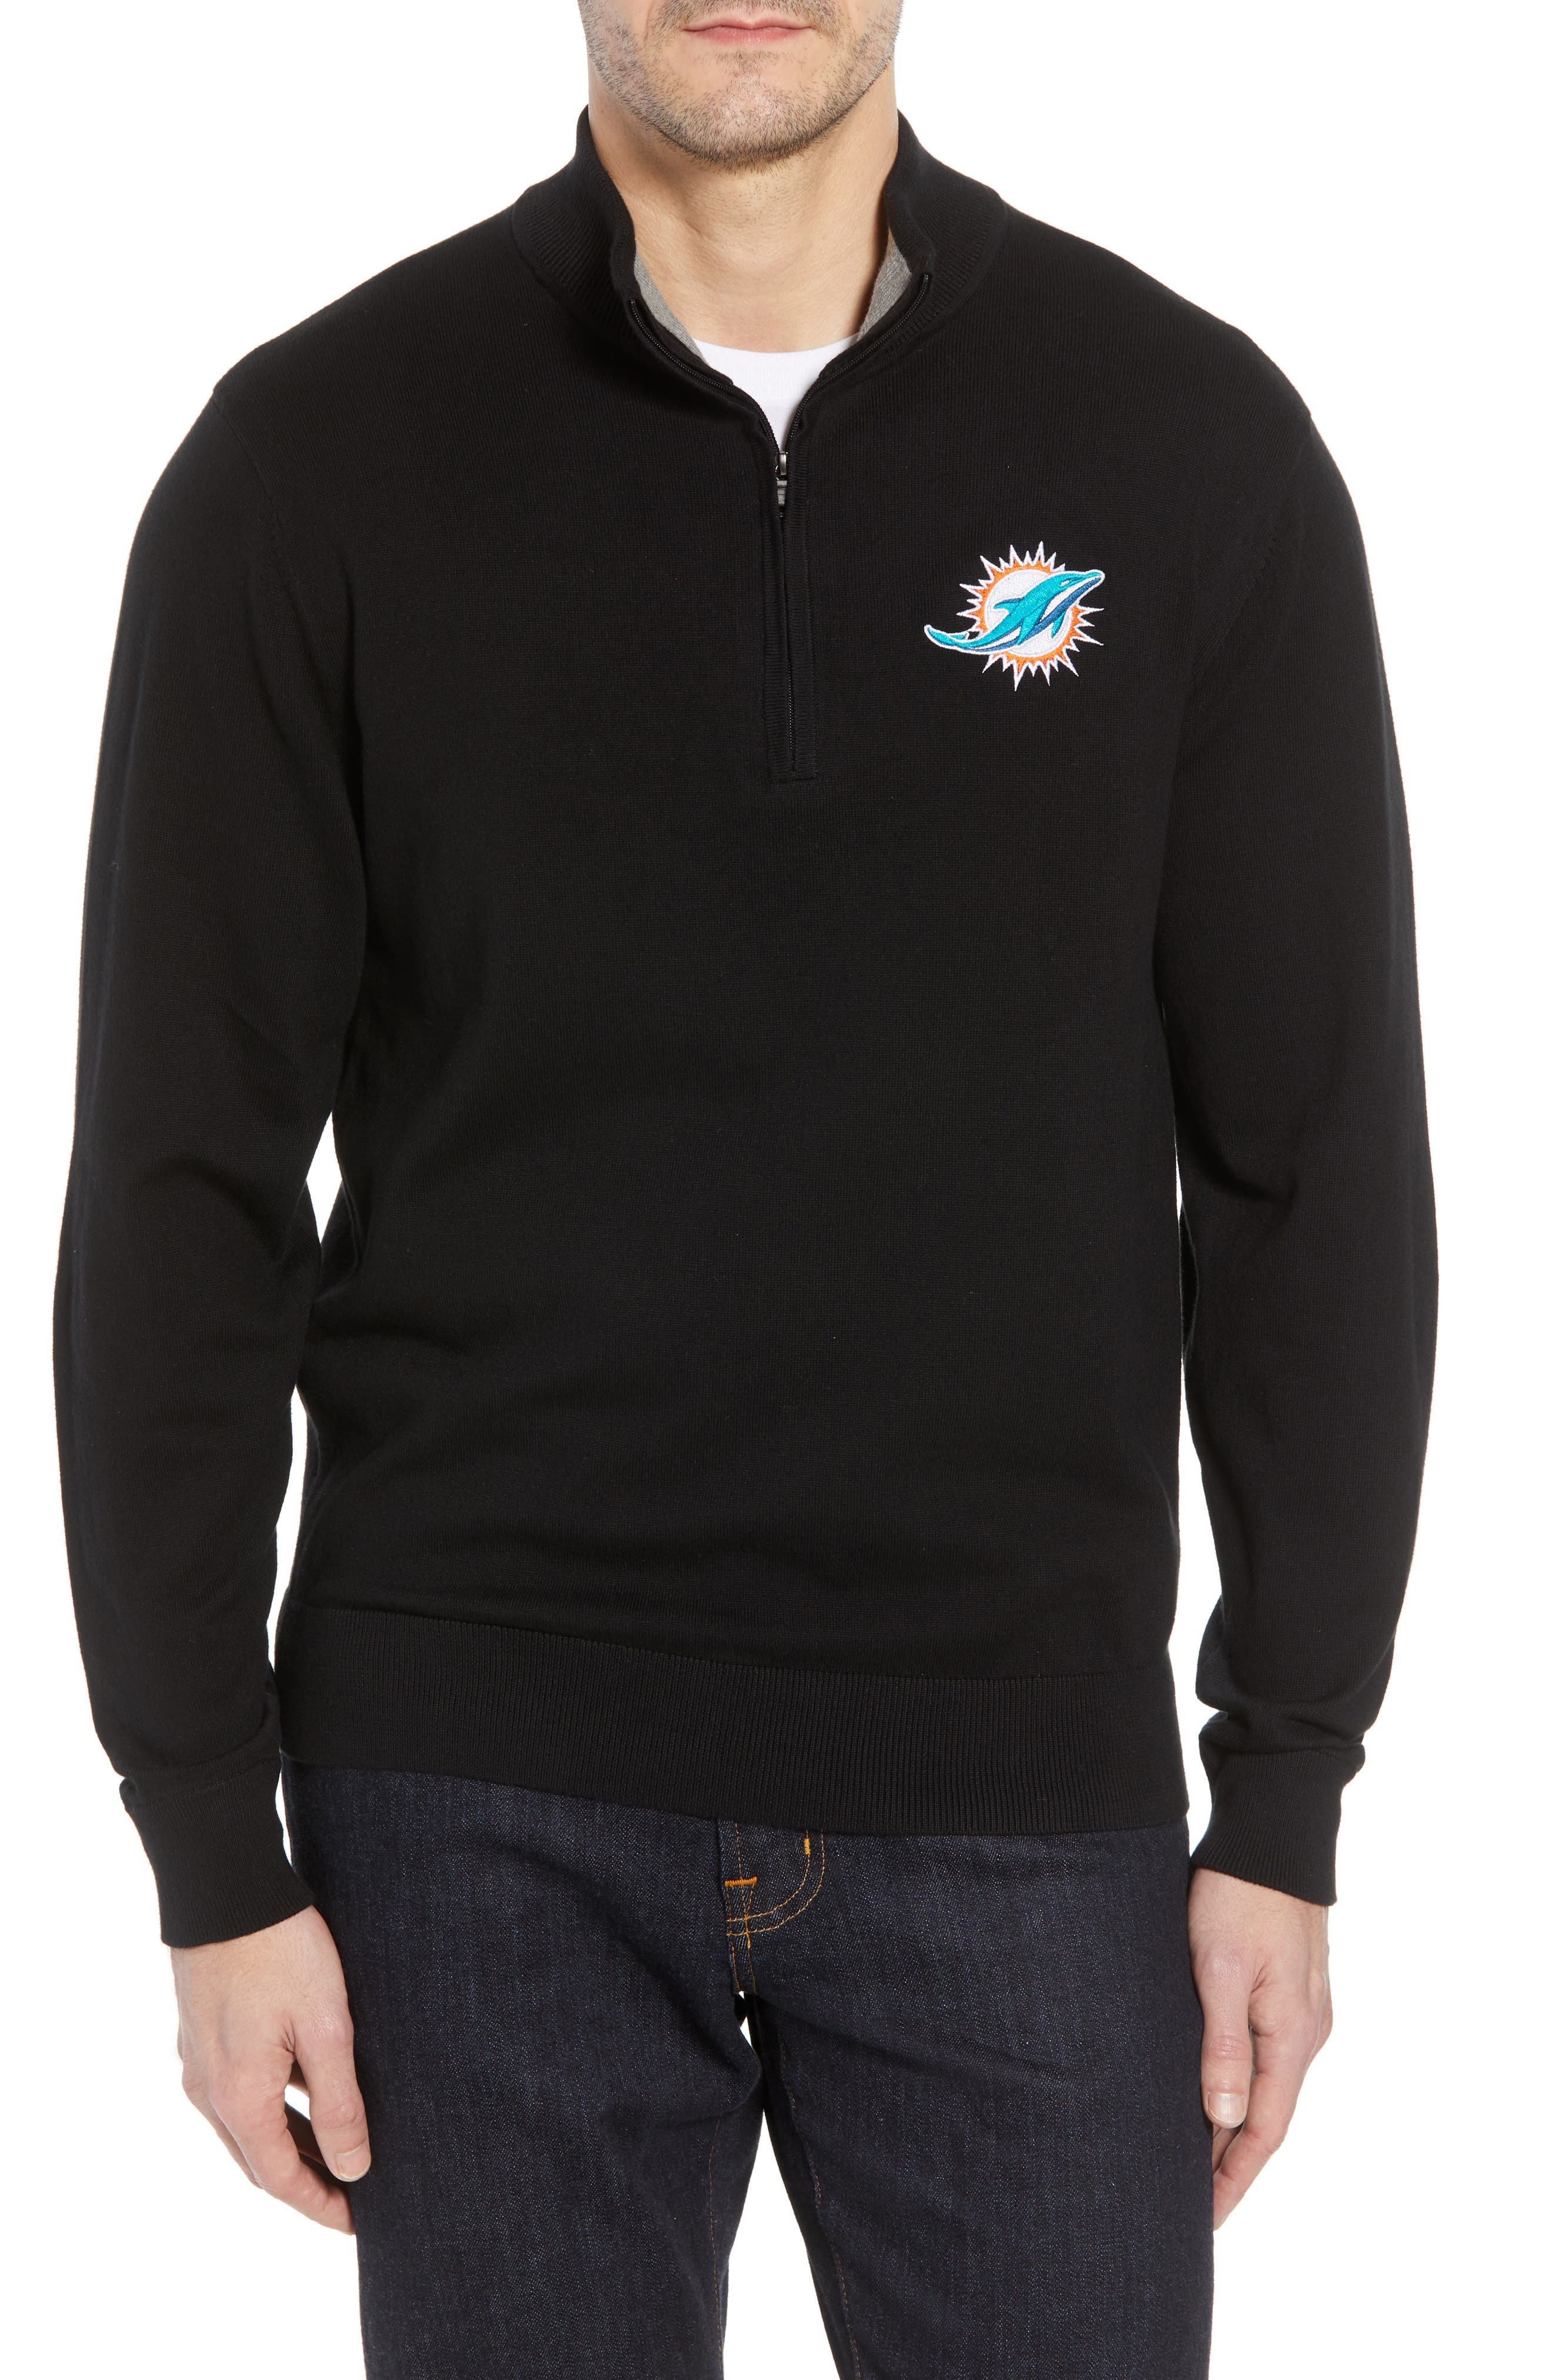 Miami Dolphins - Lakemont Regular Fit Quarter Zip Sweater,                             Main thumbnail 1, color,                             BLACK